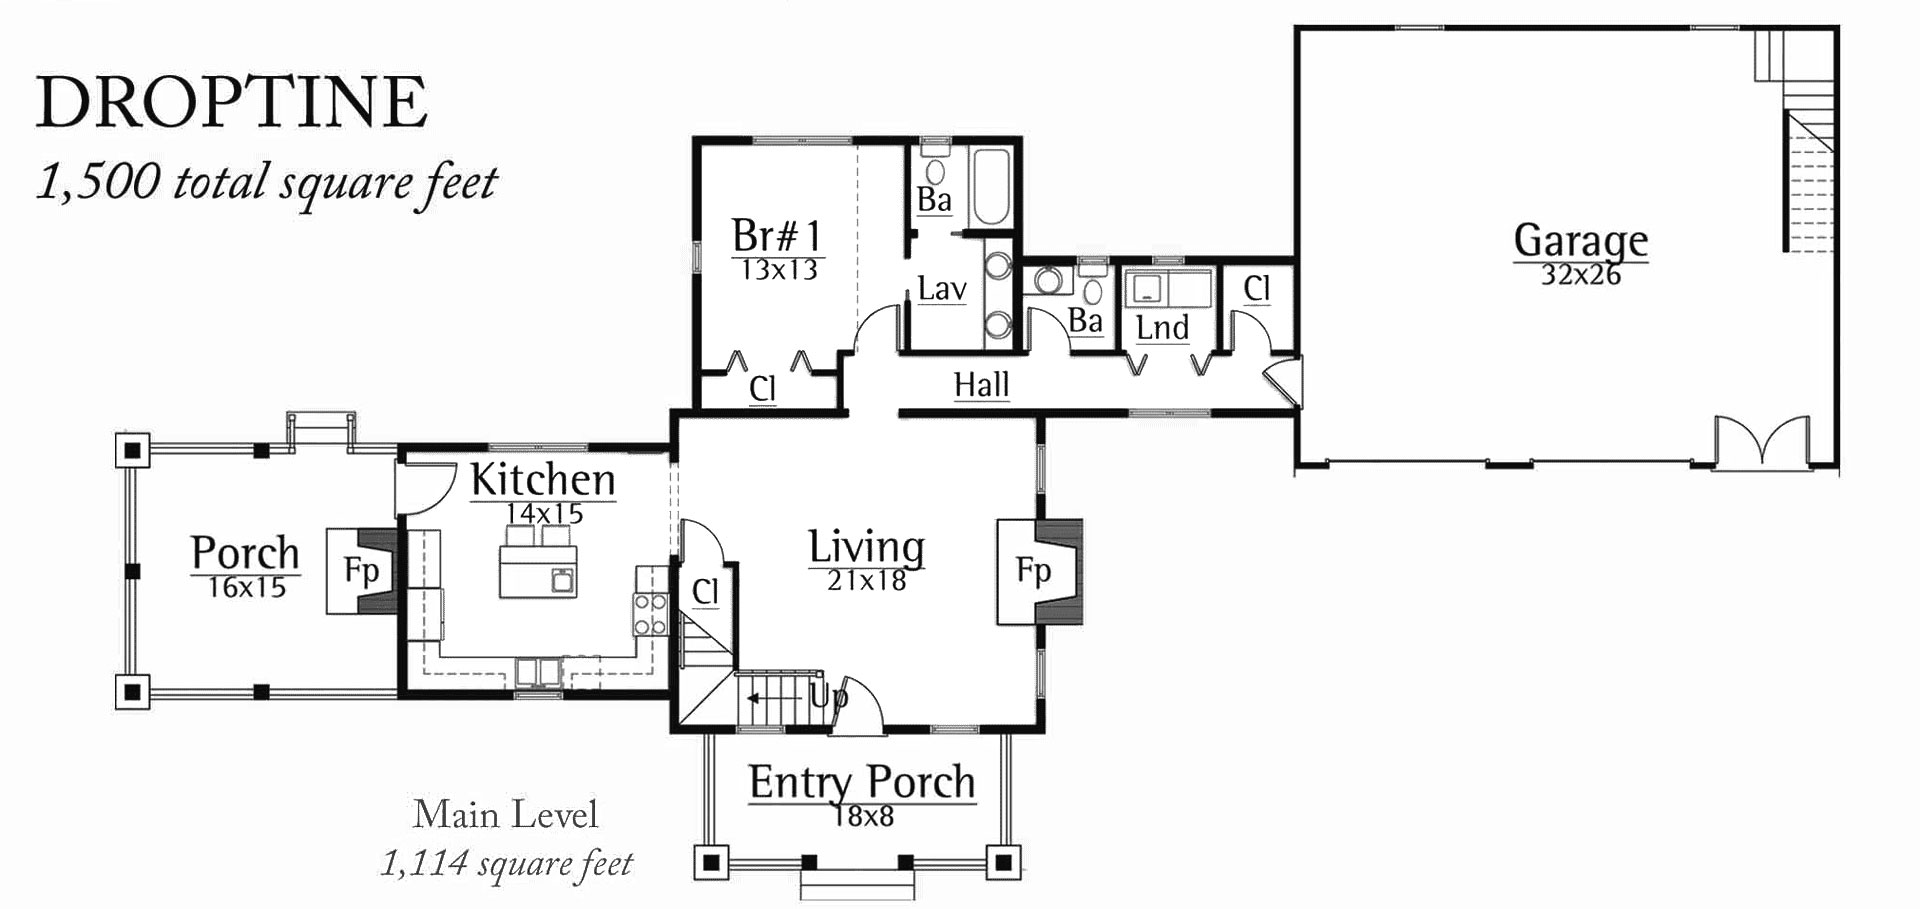 Floor Plans: Droptine